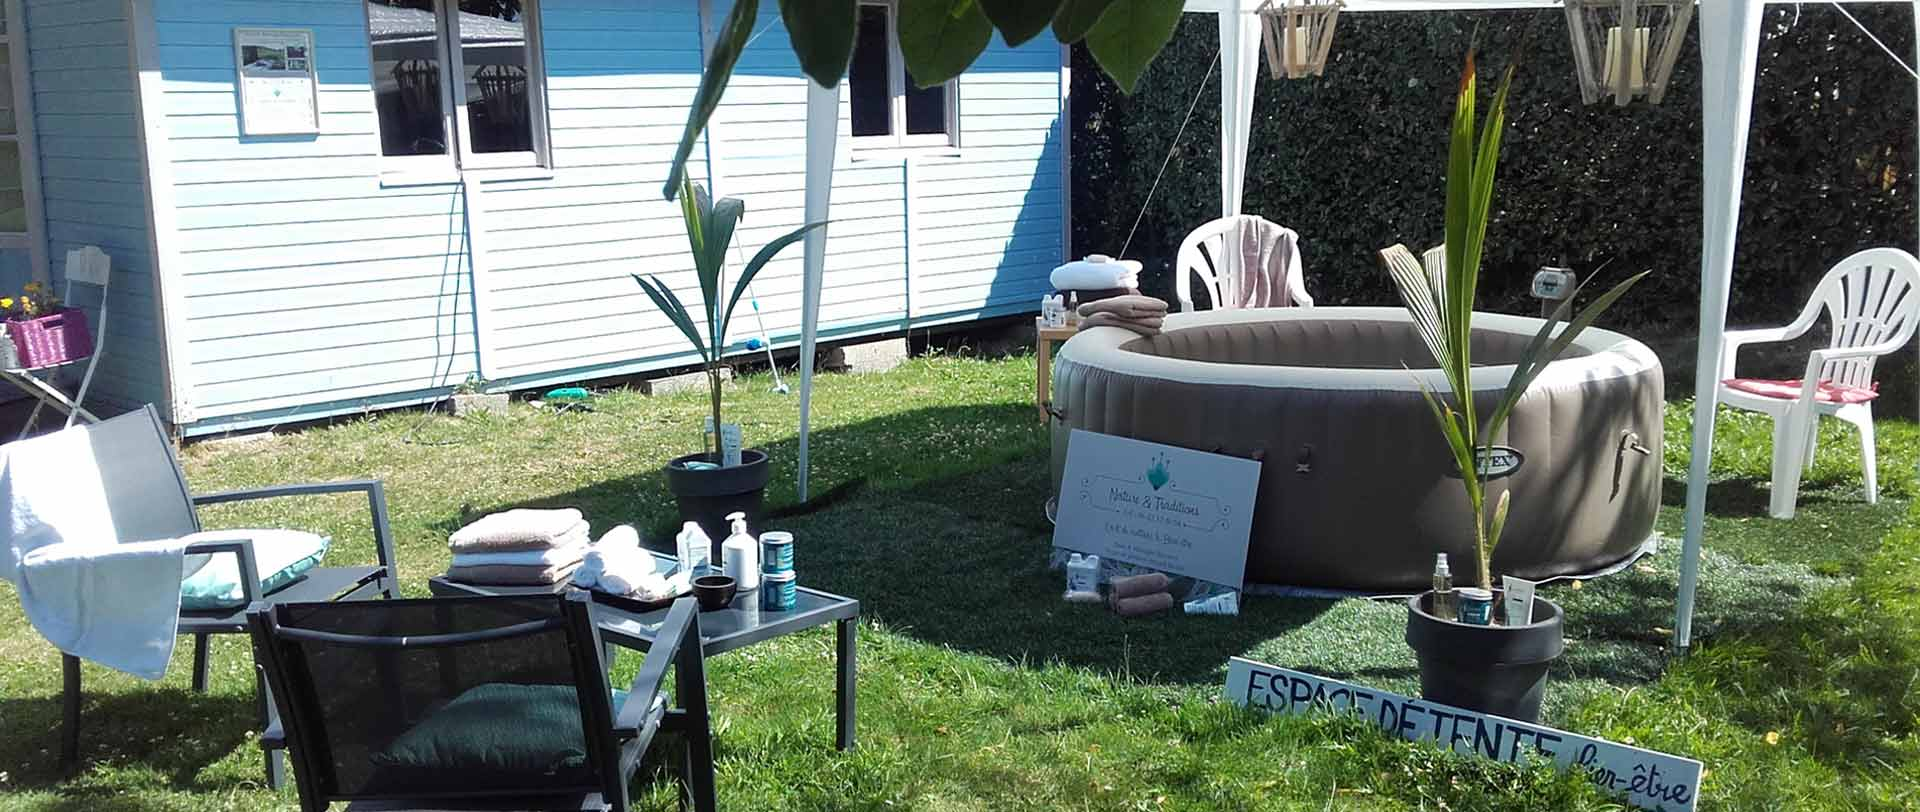 Benessere e area relax camping Penhoat fouesnant mousterlin